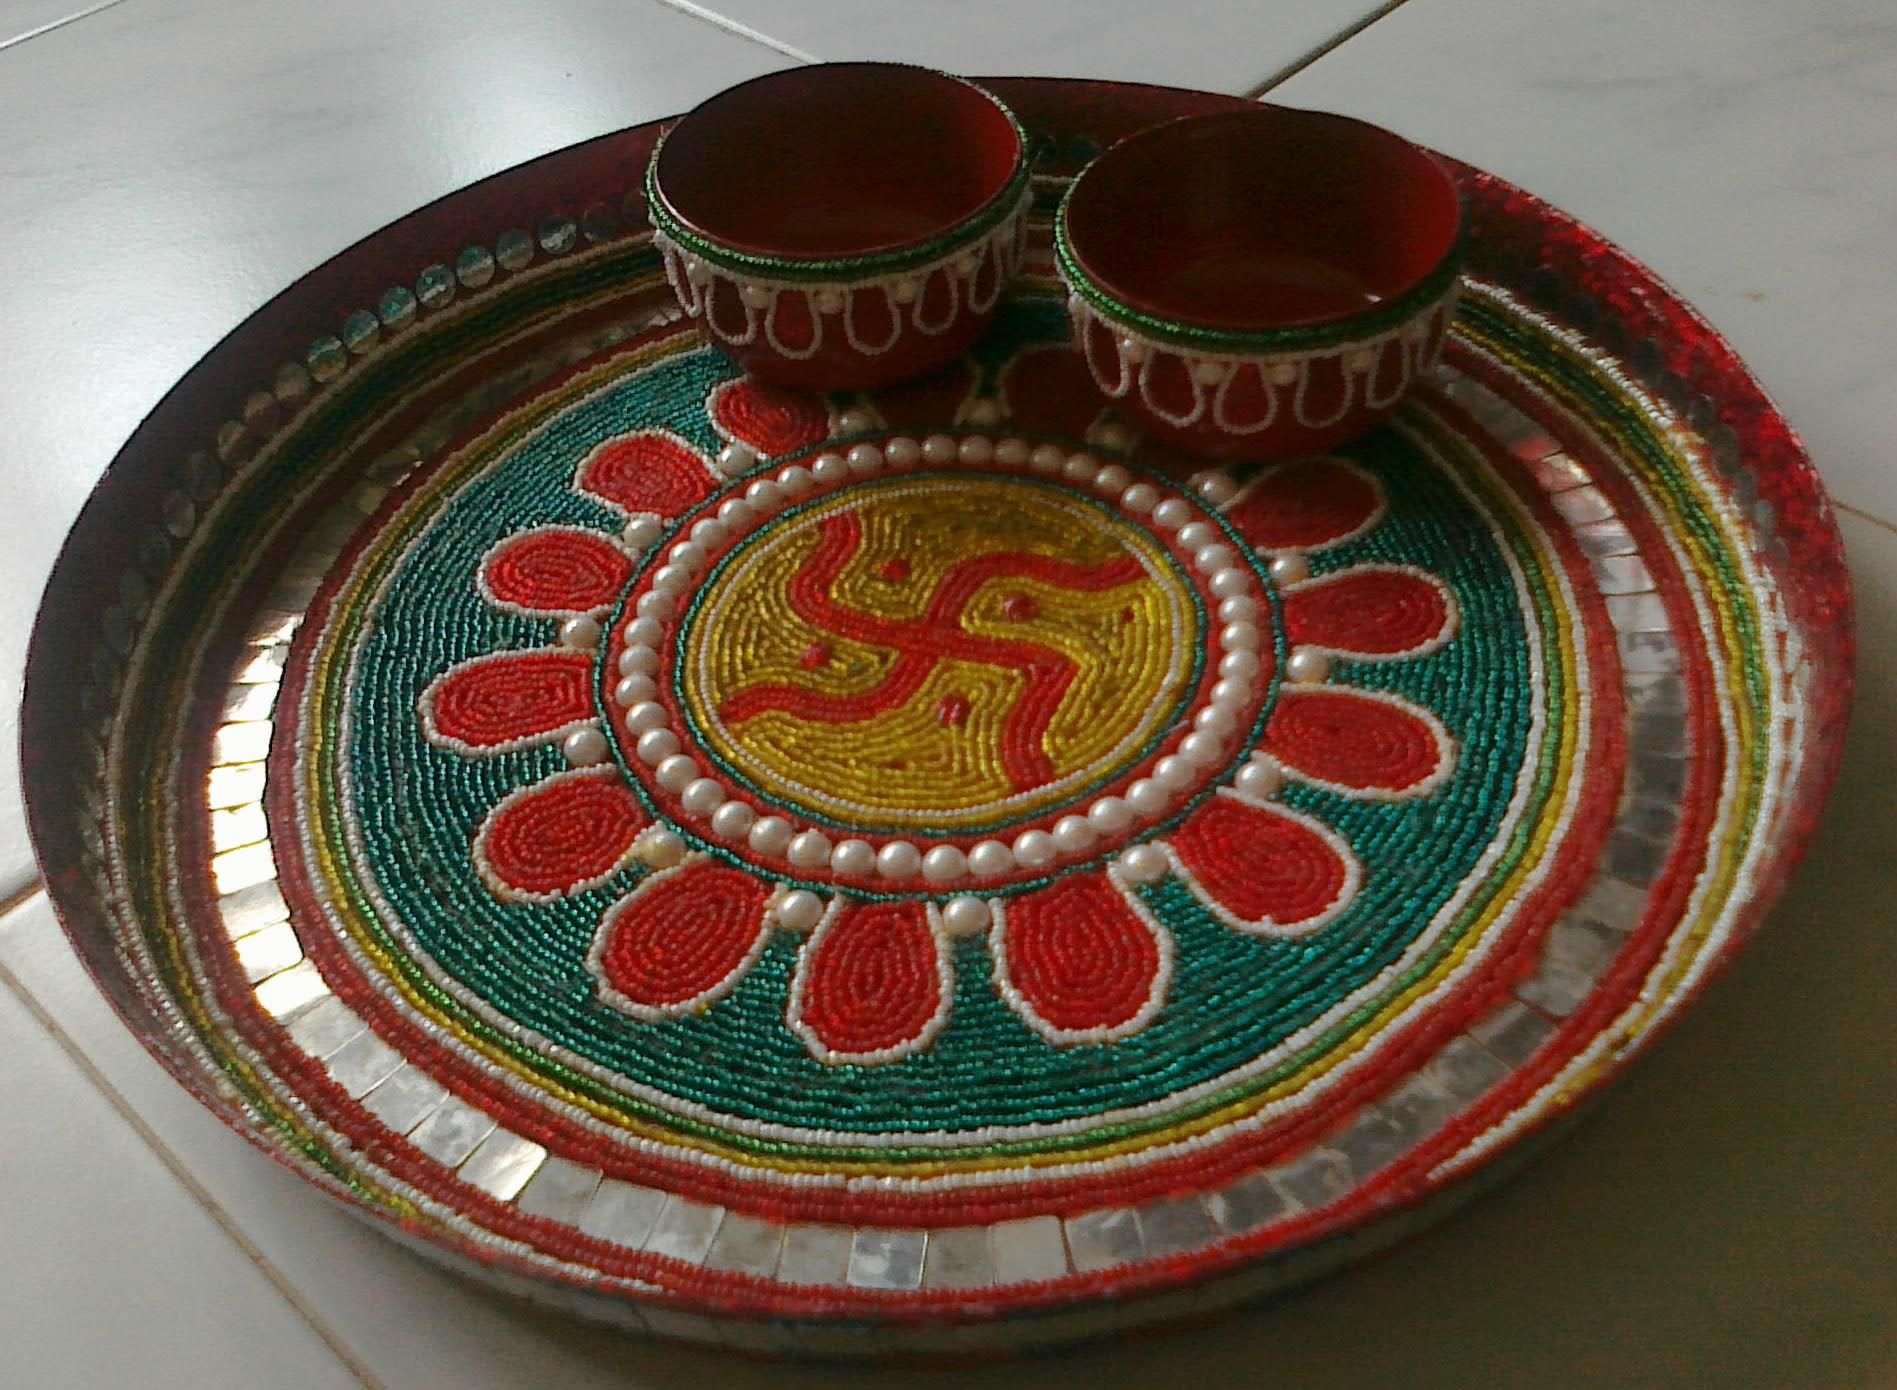 Beautifully decorated aarti thali fanart pinterest for Aarti thali decoration with clay